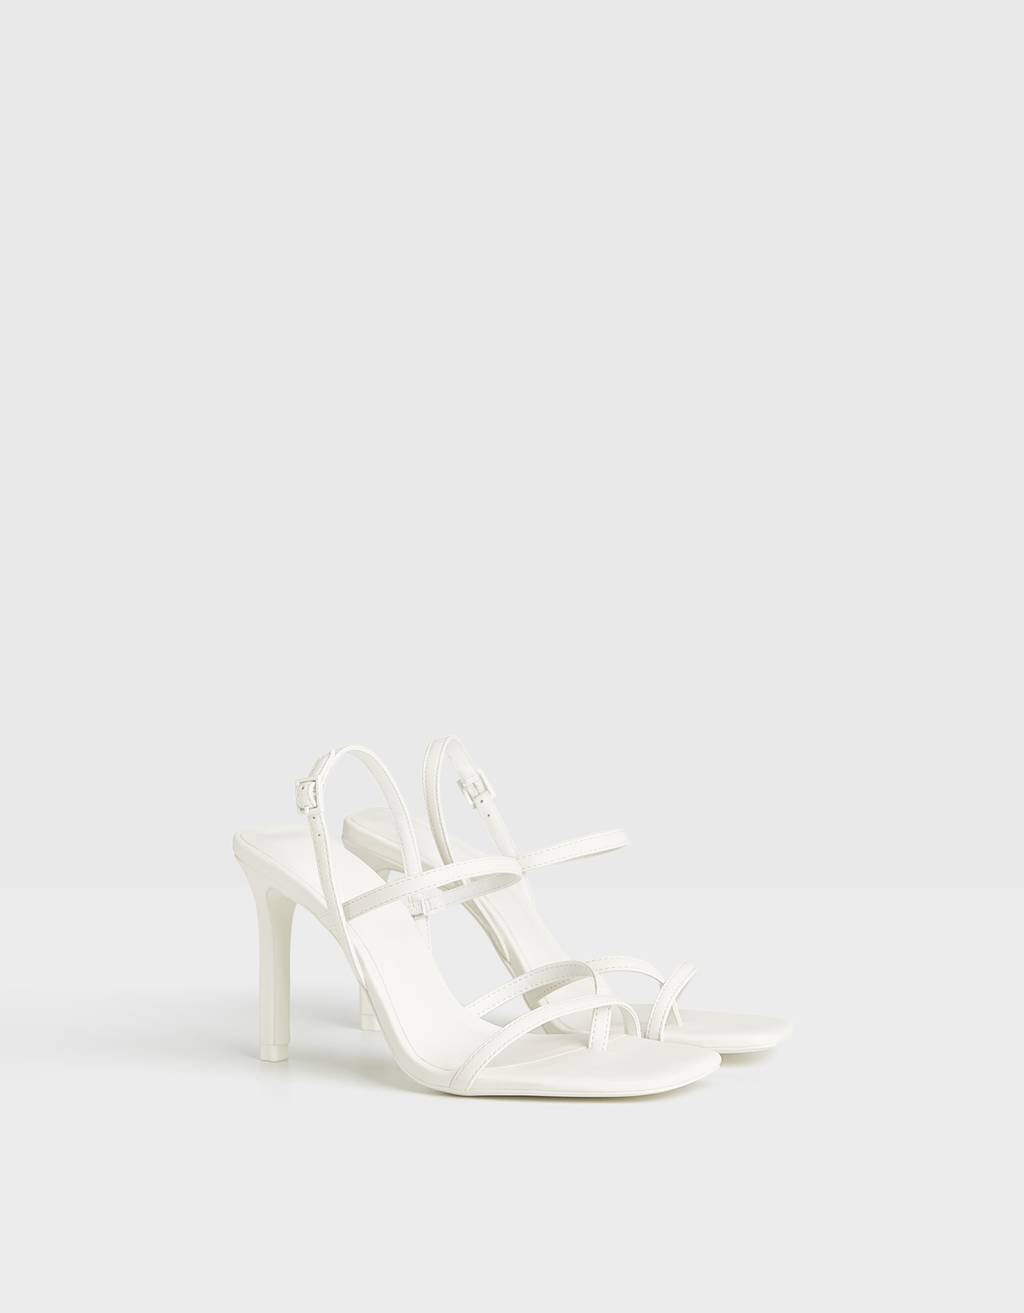 UV React heeled sandals